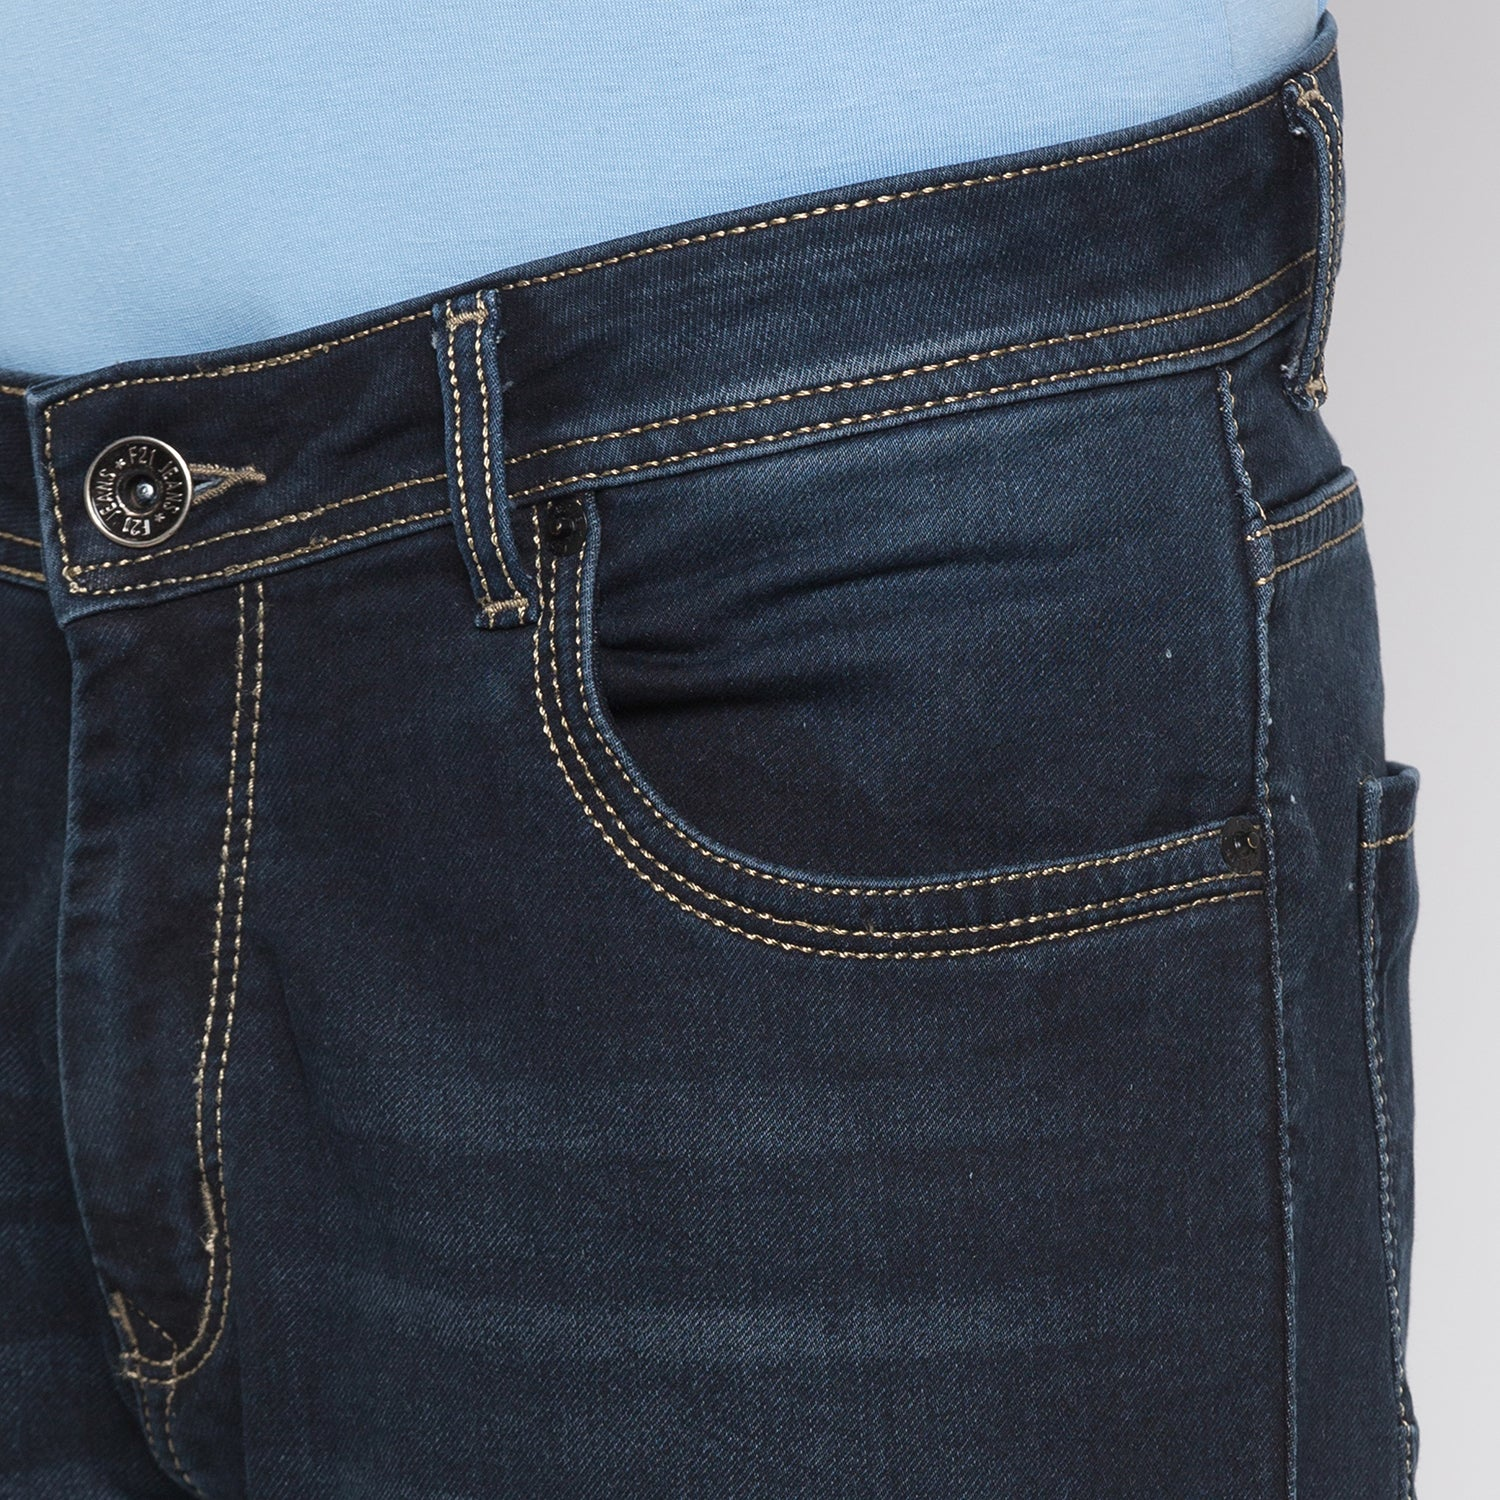 Globus Blue Black Clean Look Jeans-5